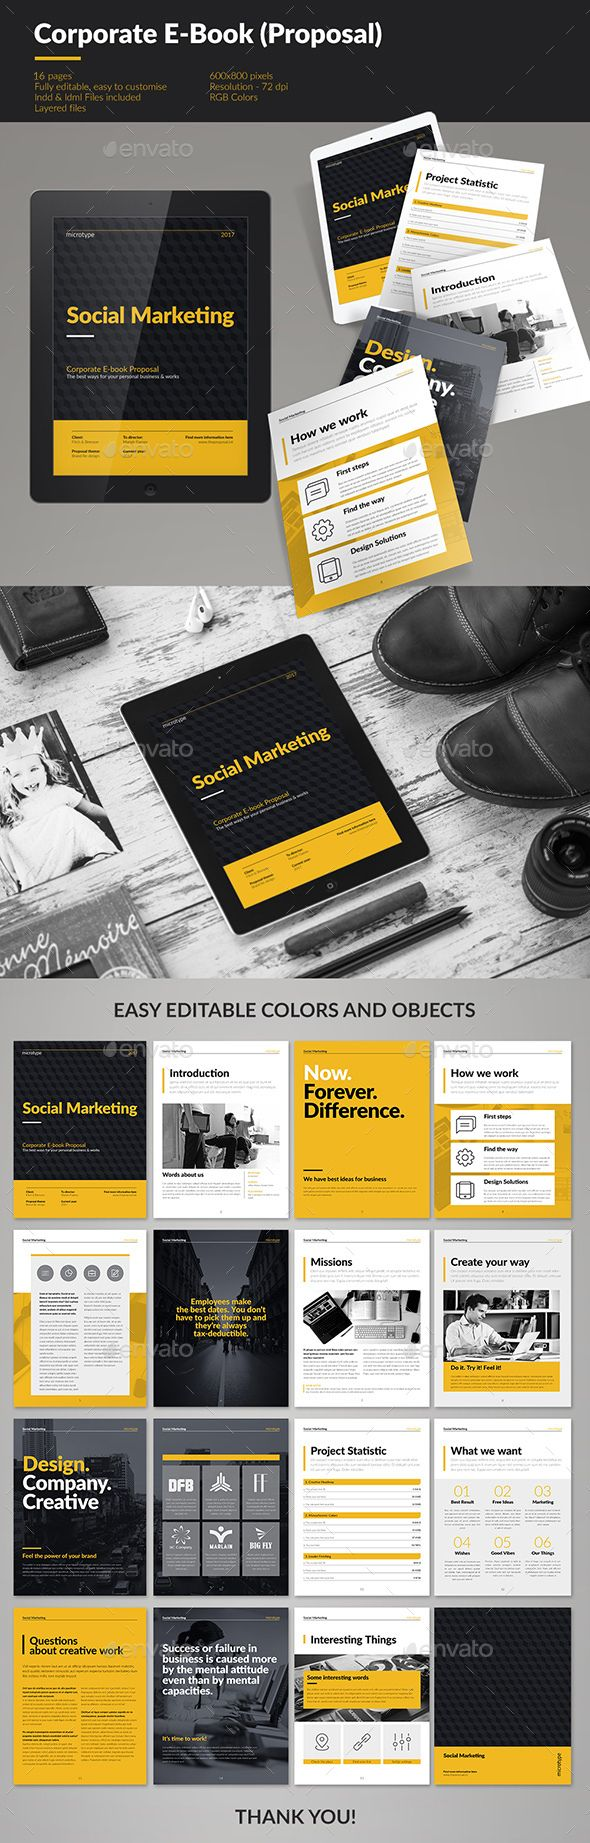 Corporate E-book Template | Template, Layouts and Brochures